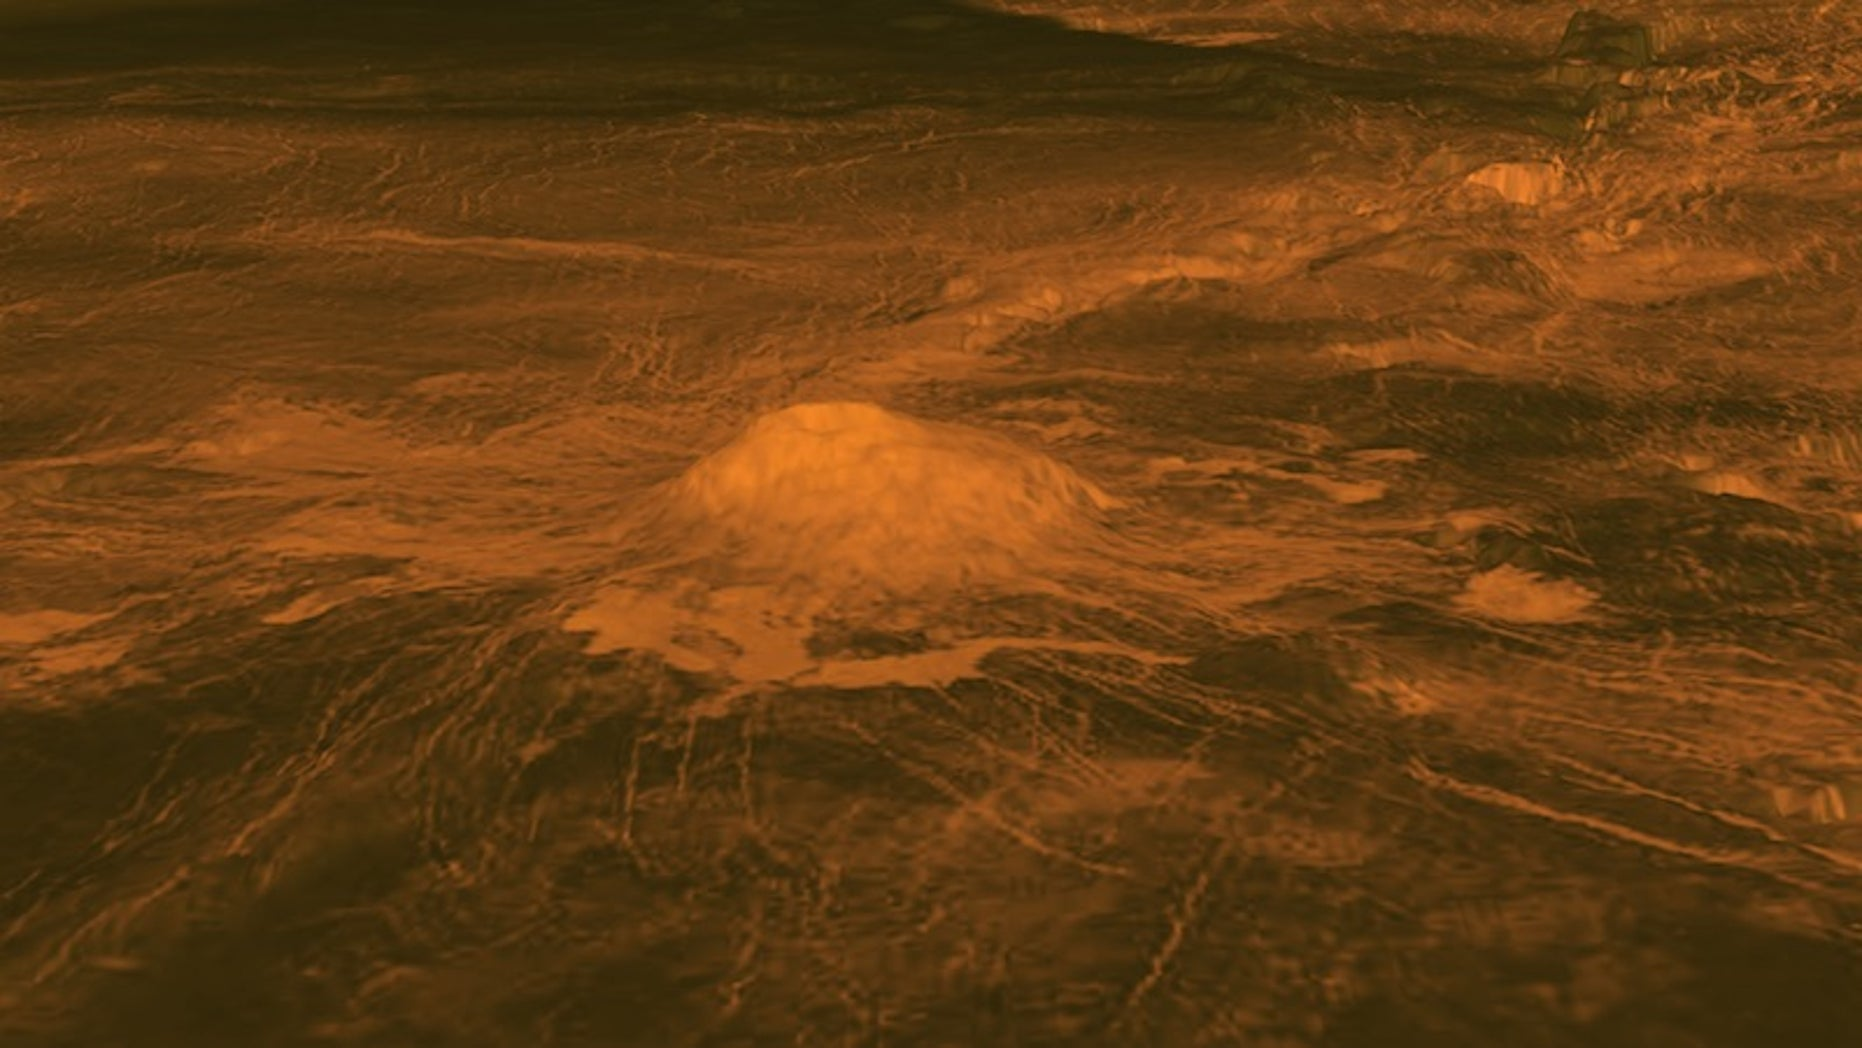 An elevation model of the volcano Idunn Mons, located at Imdr Regio on Venus.